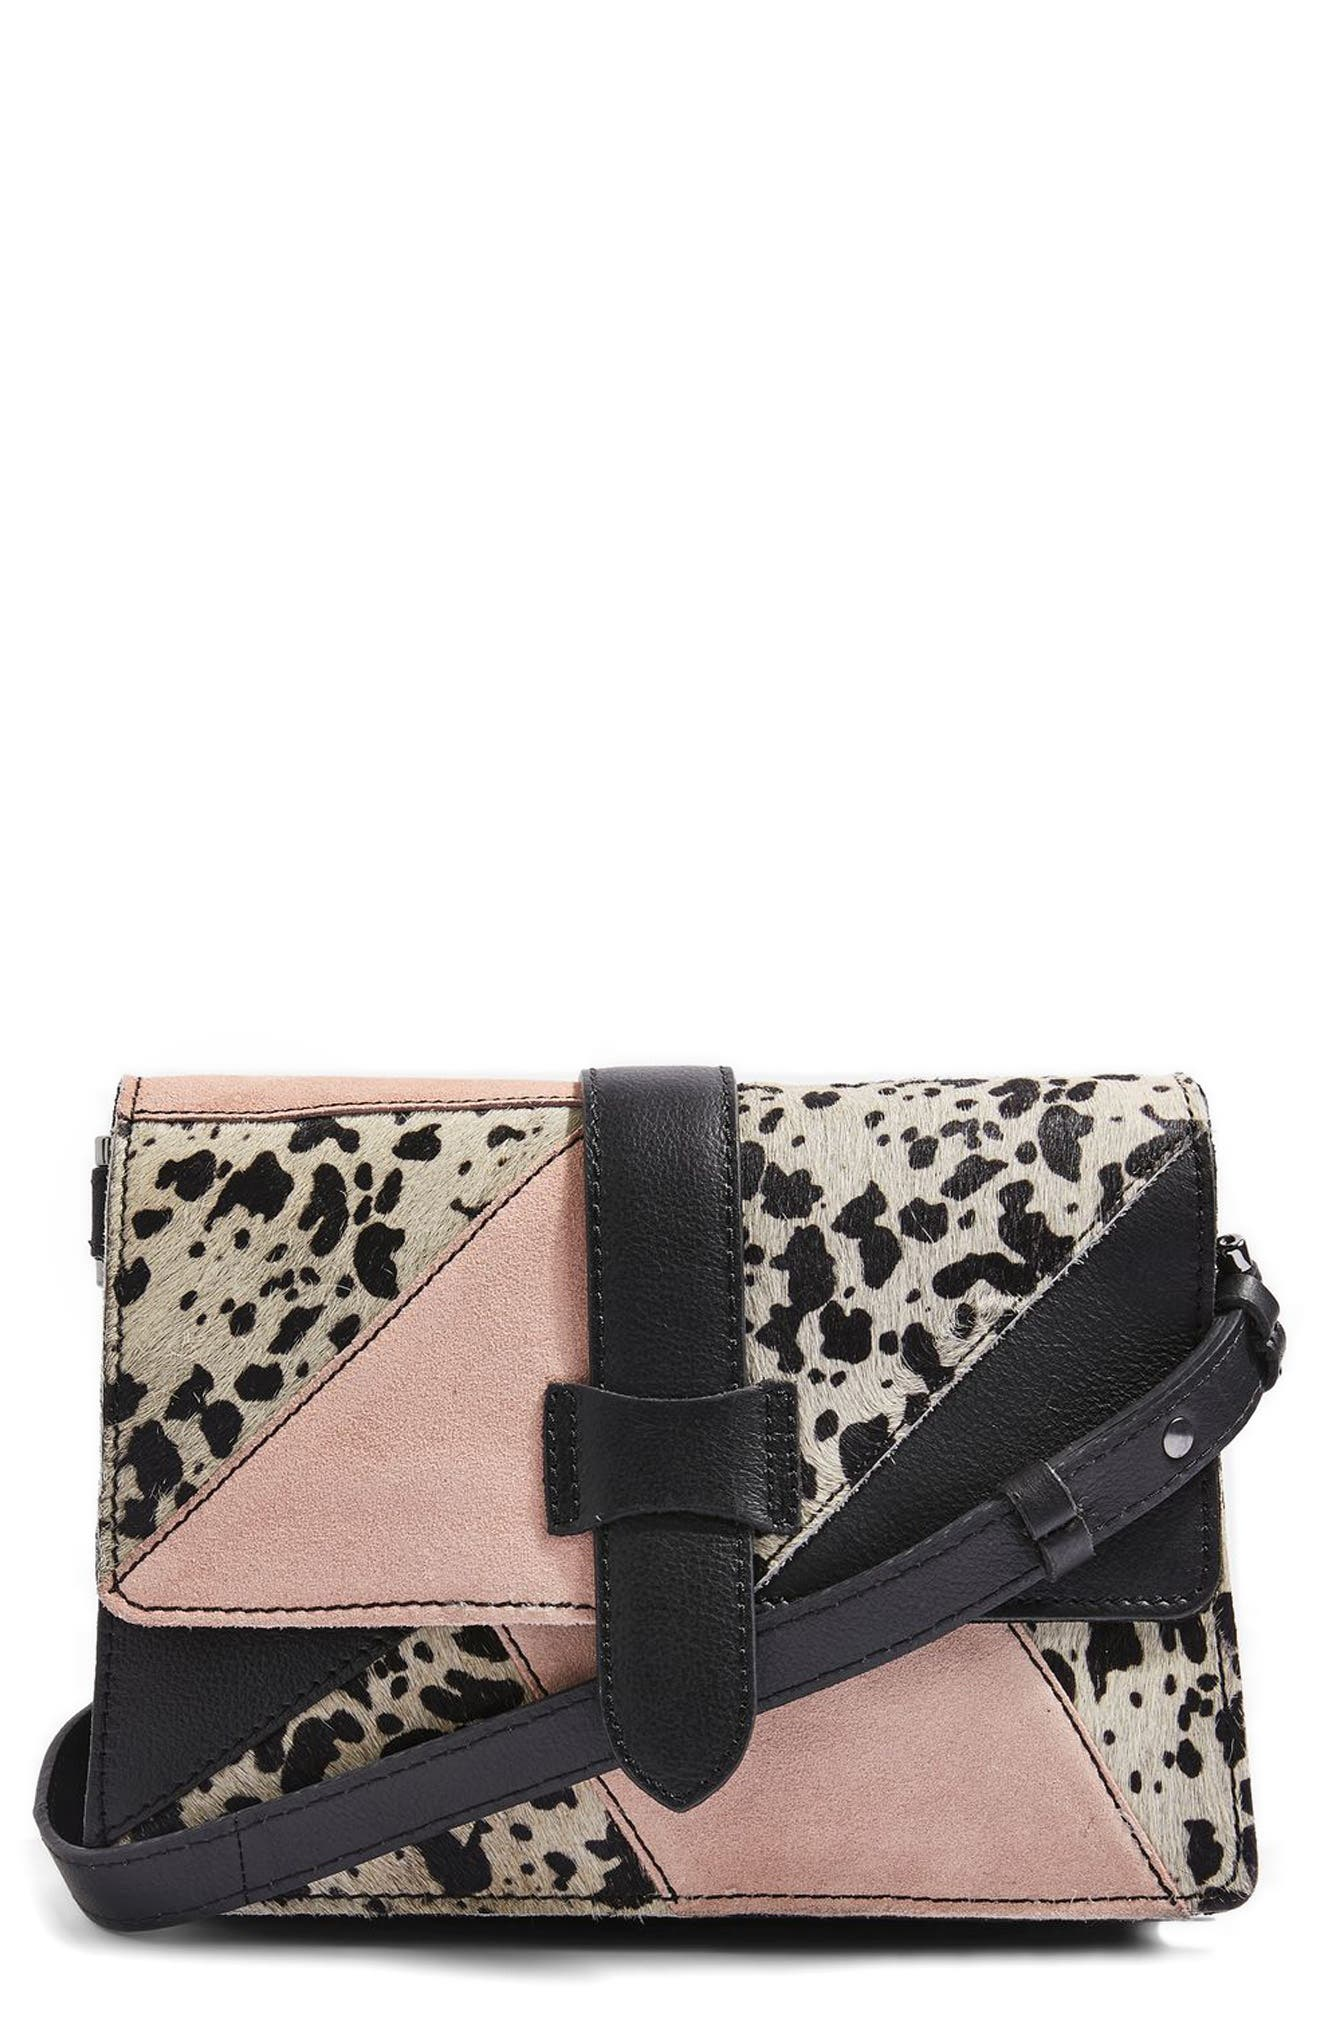 Topshop Premium Leather & Genuine Calf Hair Patchwork Crossbody Bag